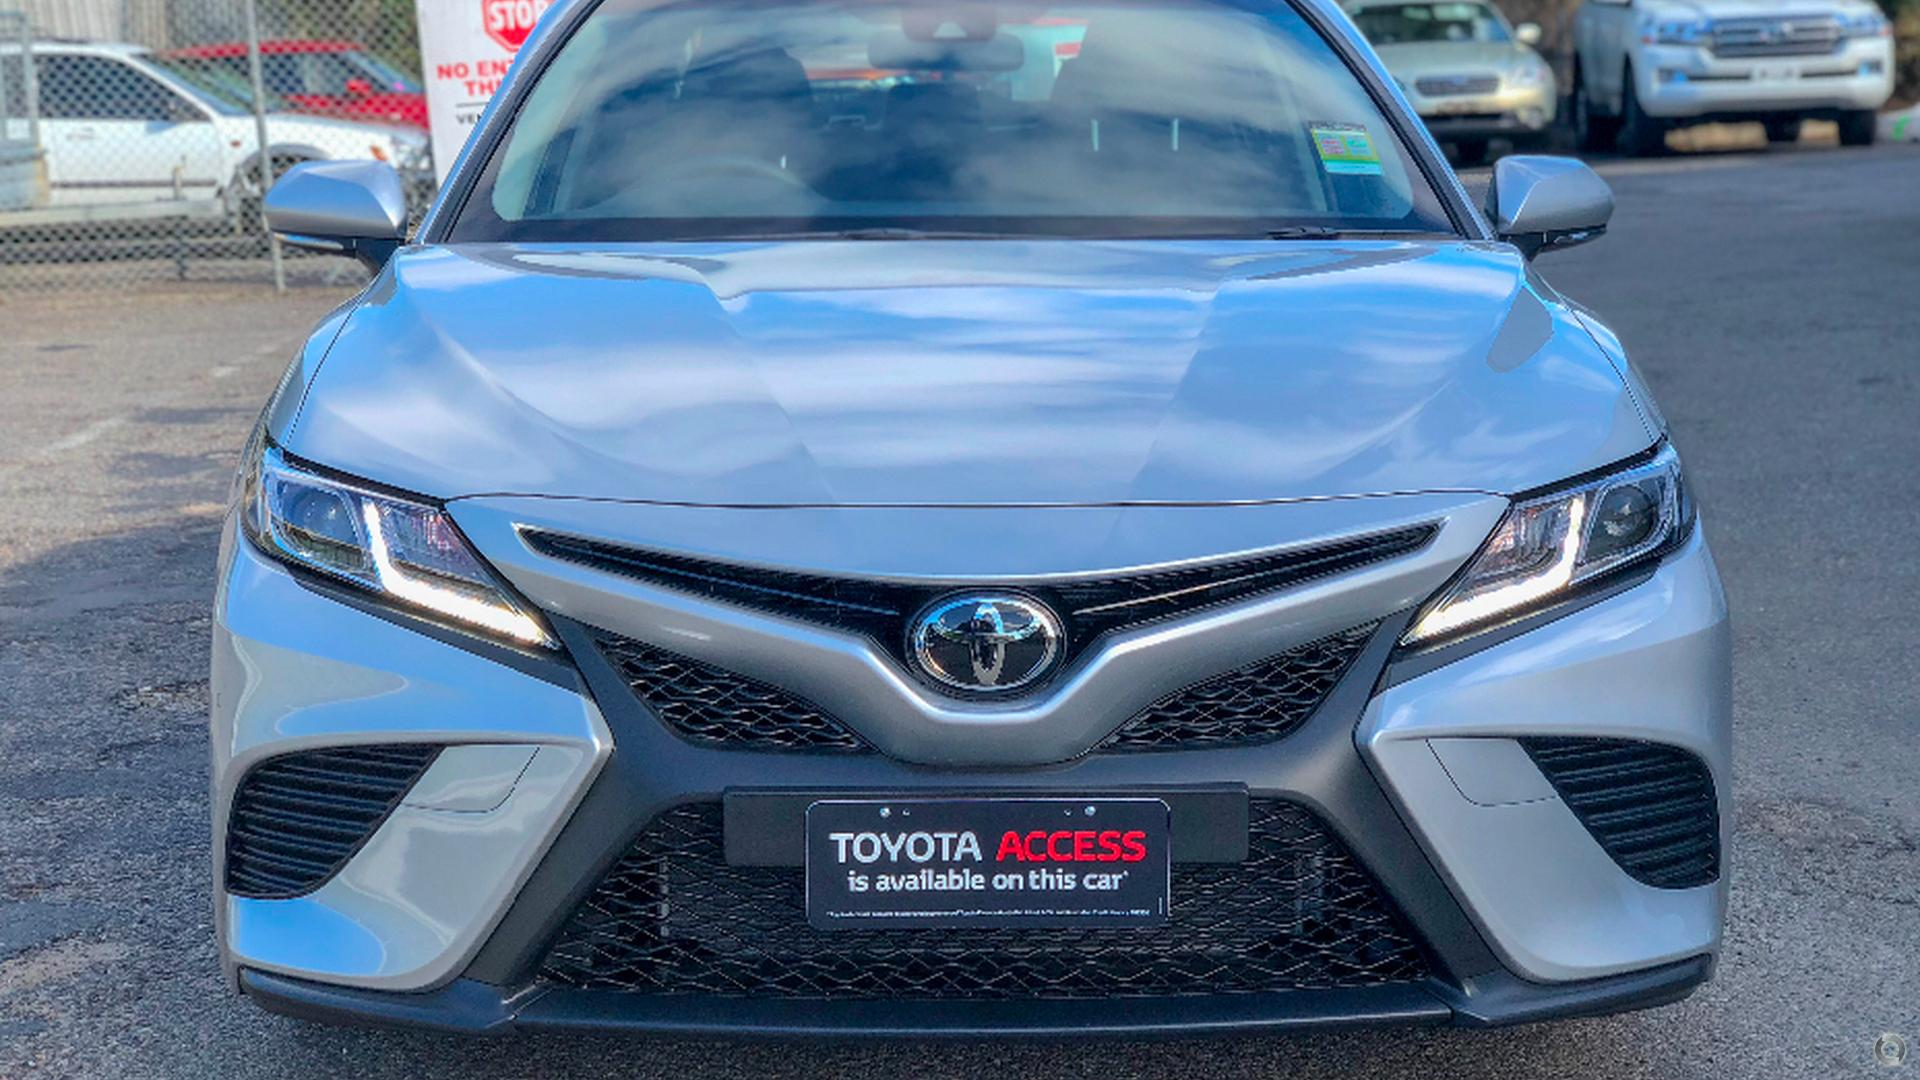 2018 Toyota Camry Ascent Sport ASV70R